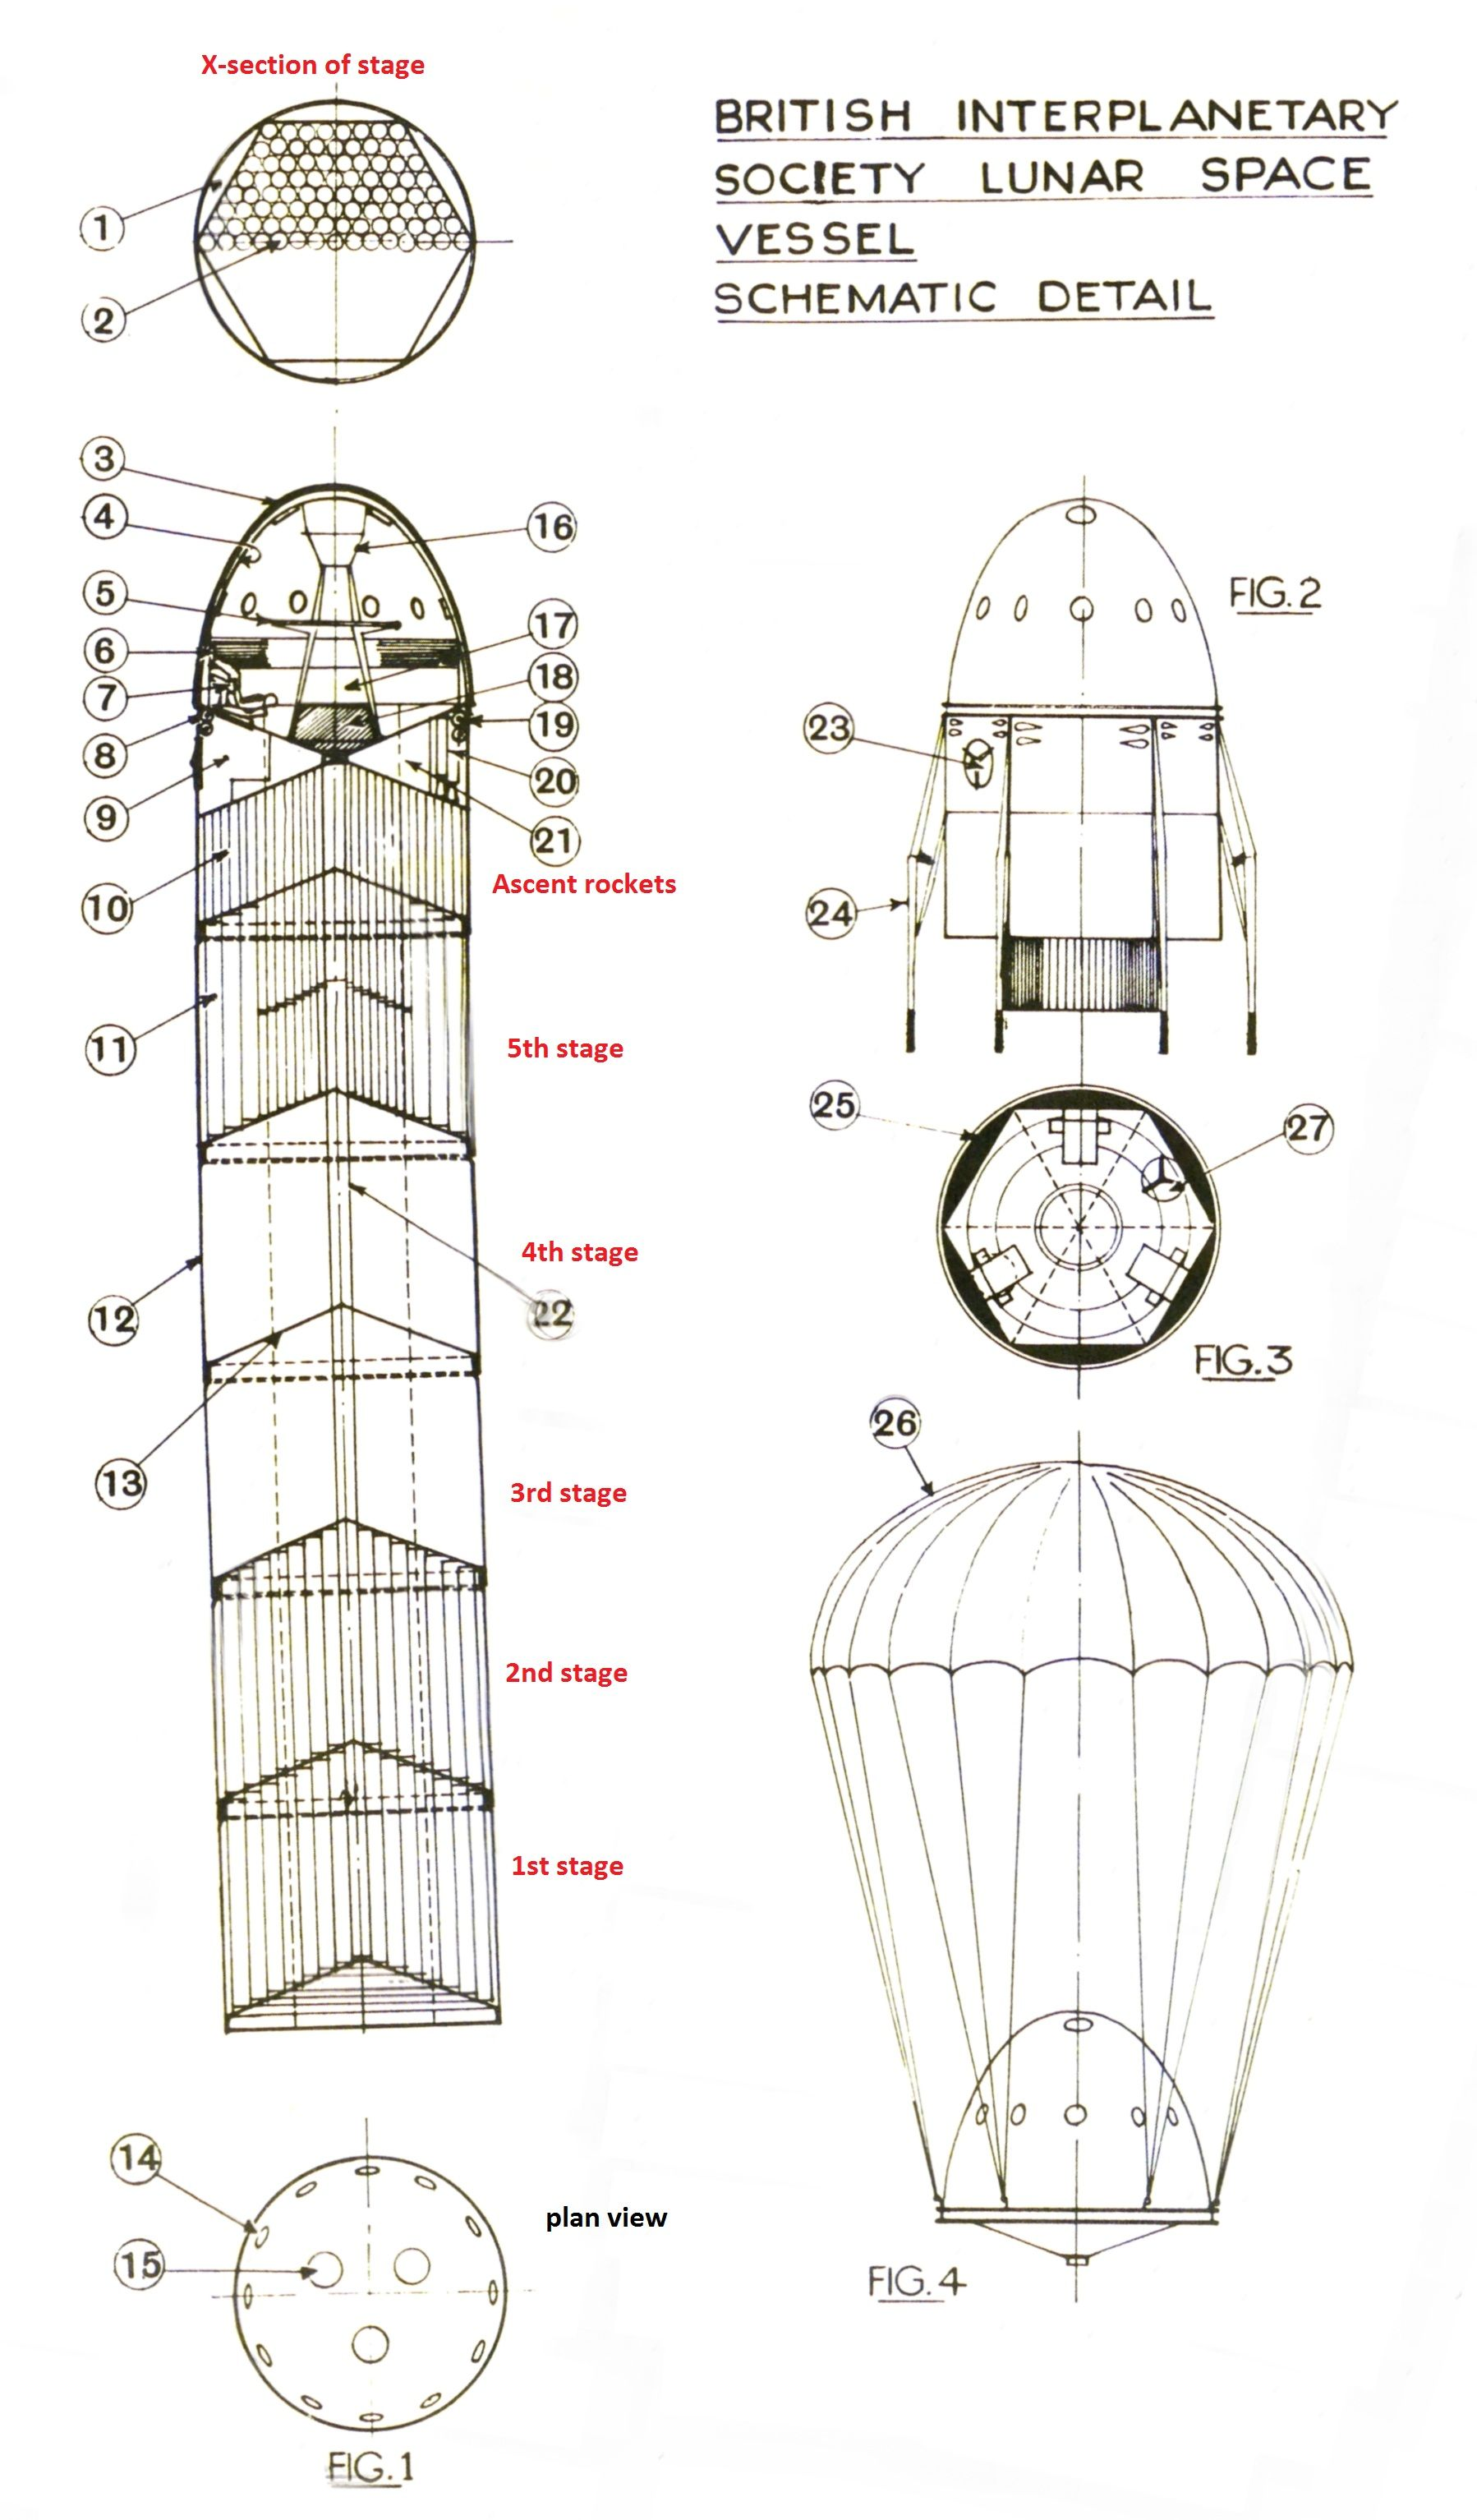 1939 schematic of a 5 stage rocket spaceship to land on and return from the moon by the british interplanetary society artist r a smith  [ 1798 x 3067 Pixel ]